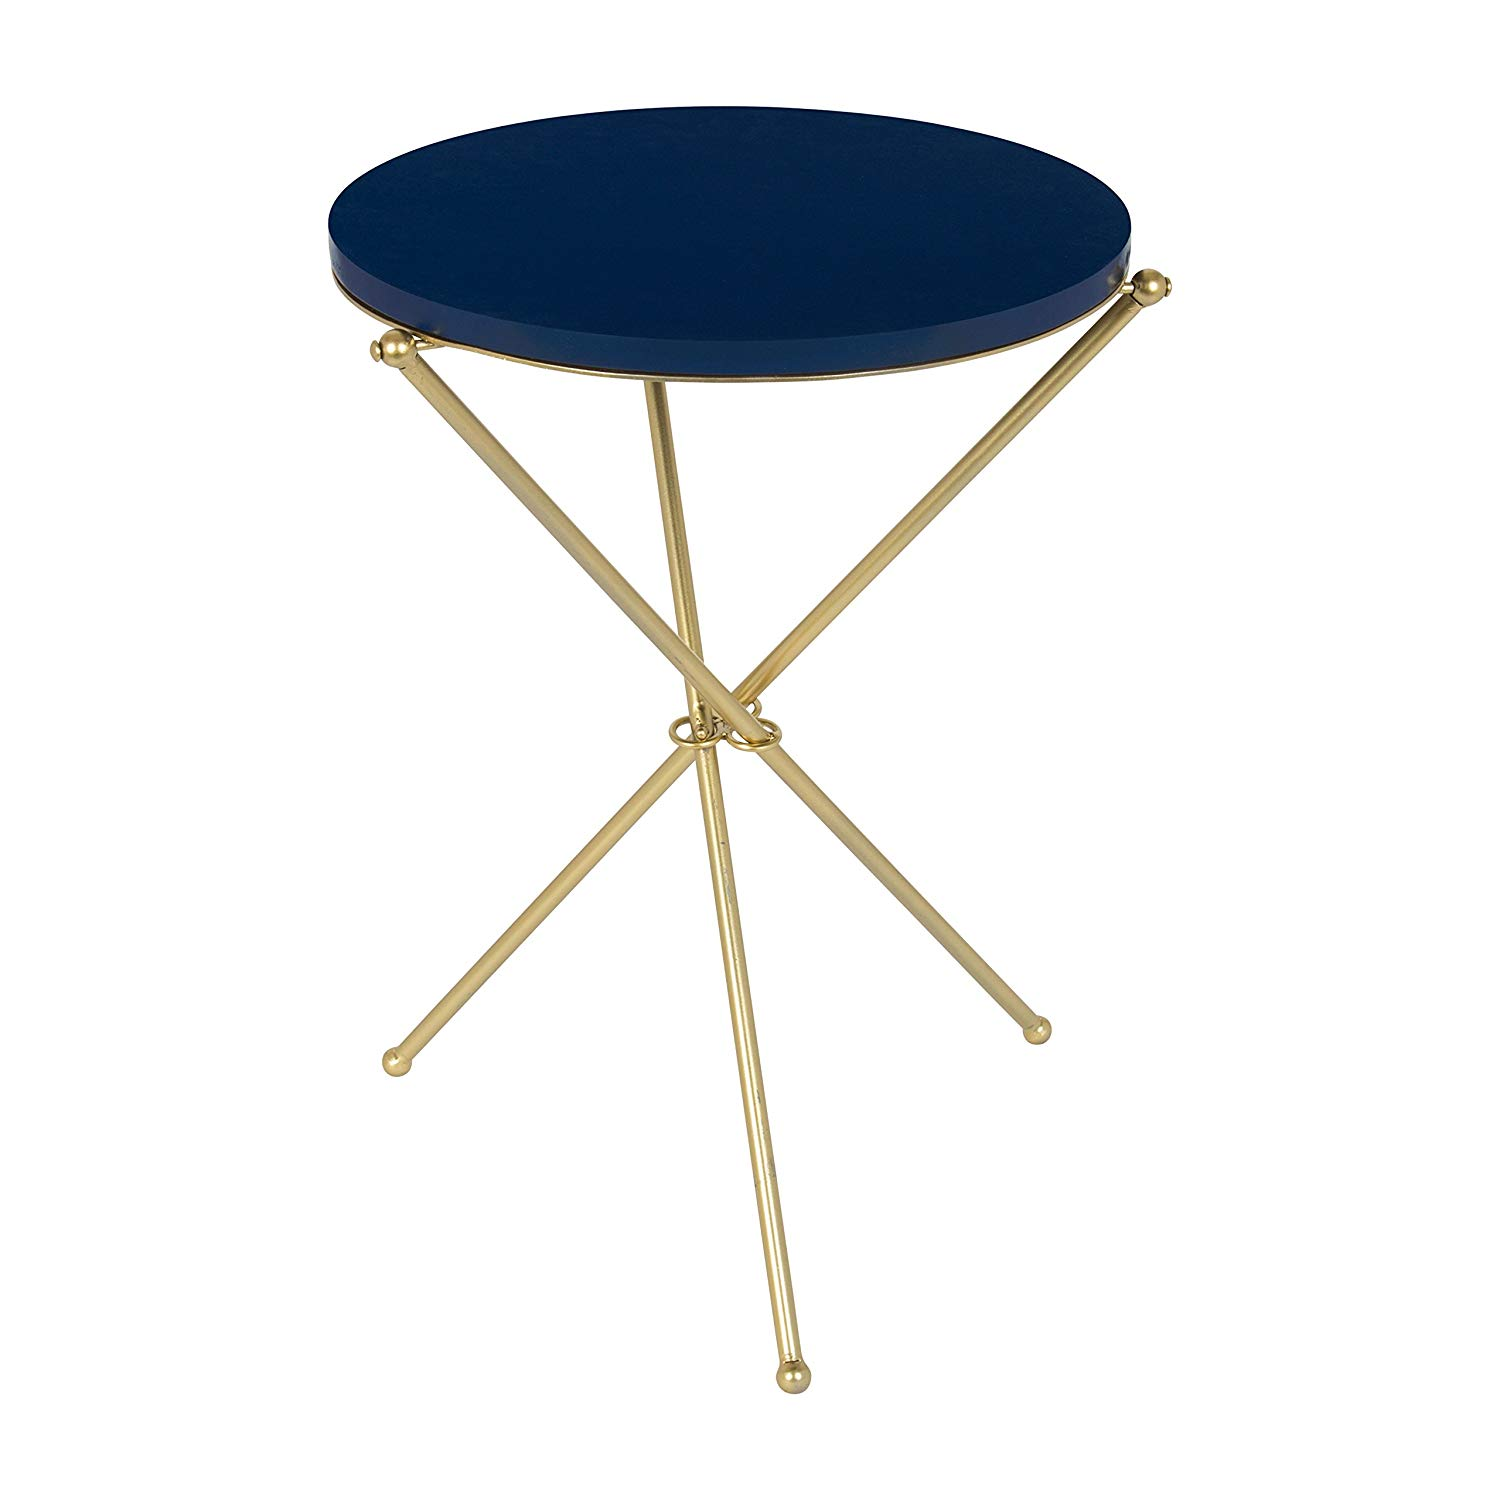 kate and laurel emellyn modern luxe folding side accent wood top table with round painted wooden metal tripod legs navy blue gold inch diameter small nate berkus bedding red lamp